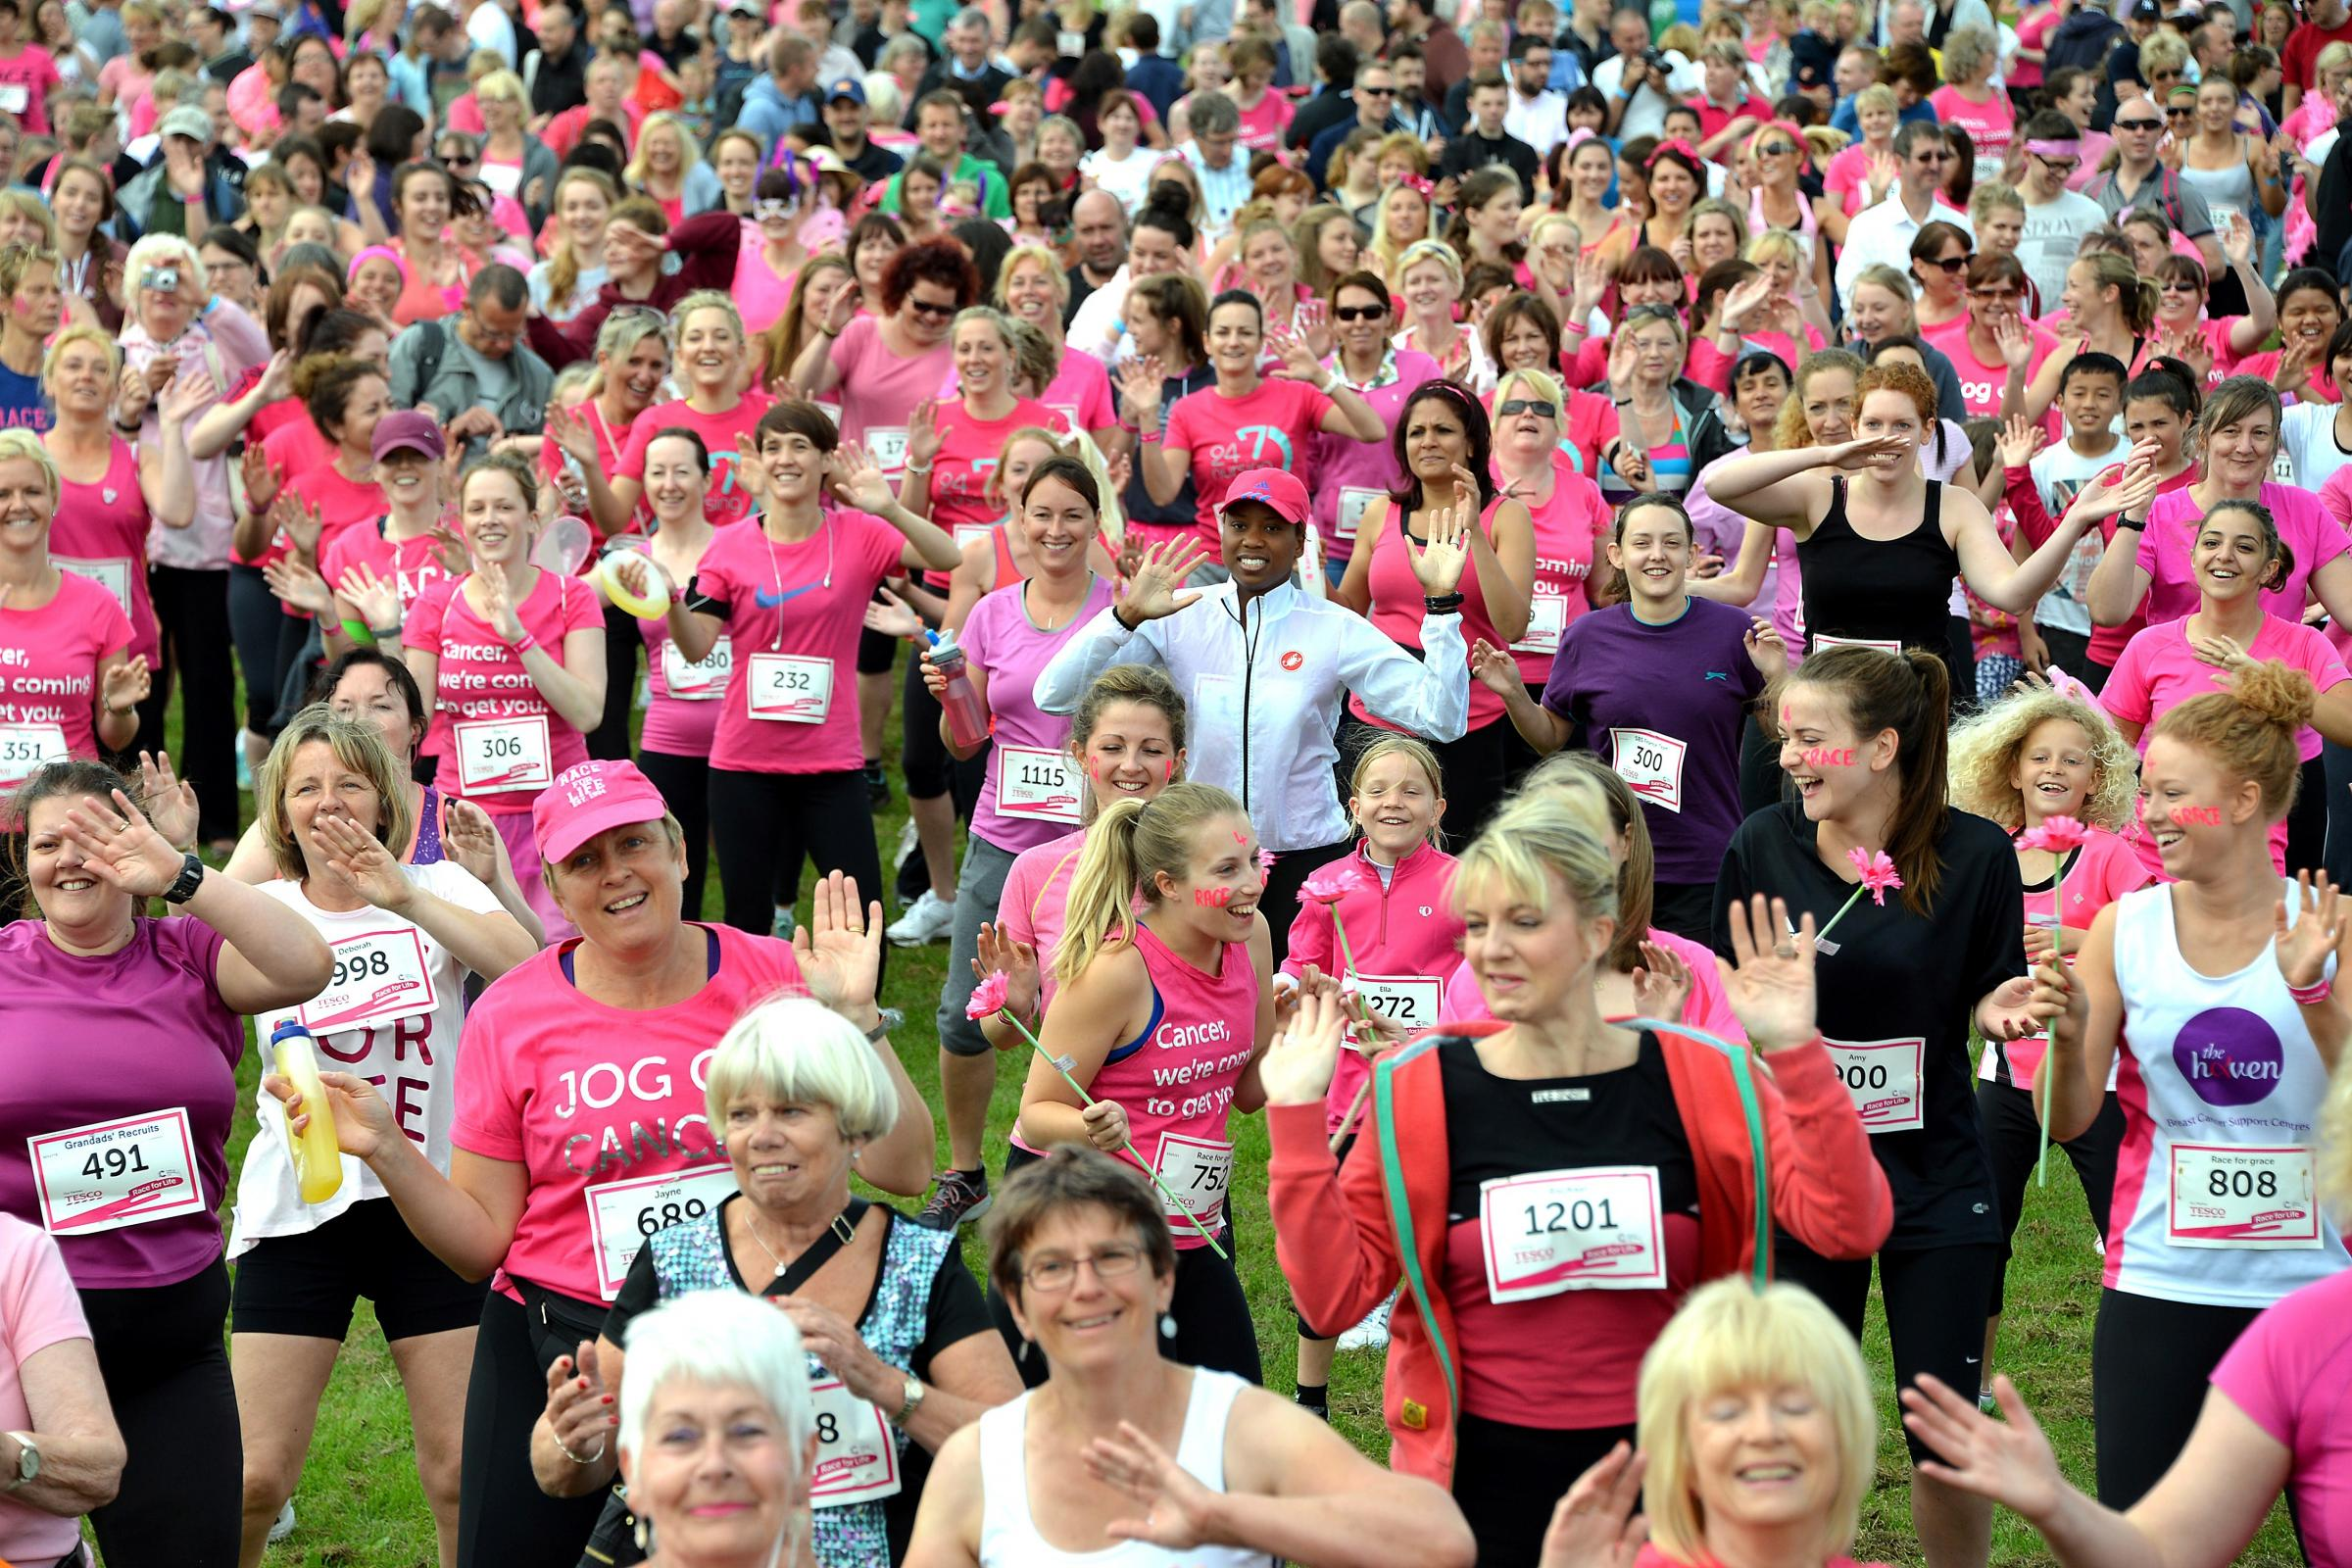 More than 1,300 women create a sea of pink during Ilkley Race for Life